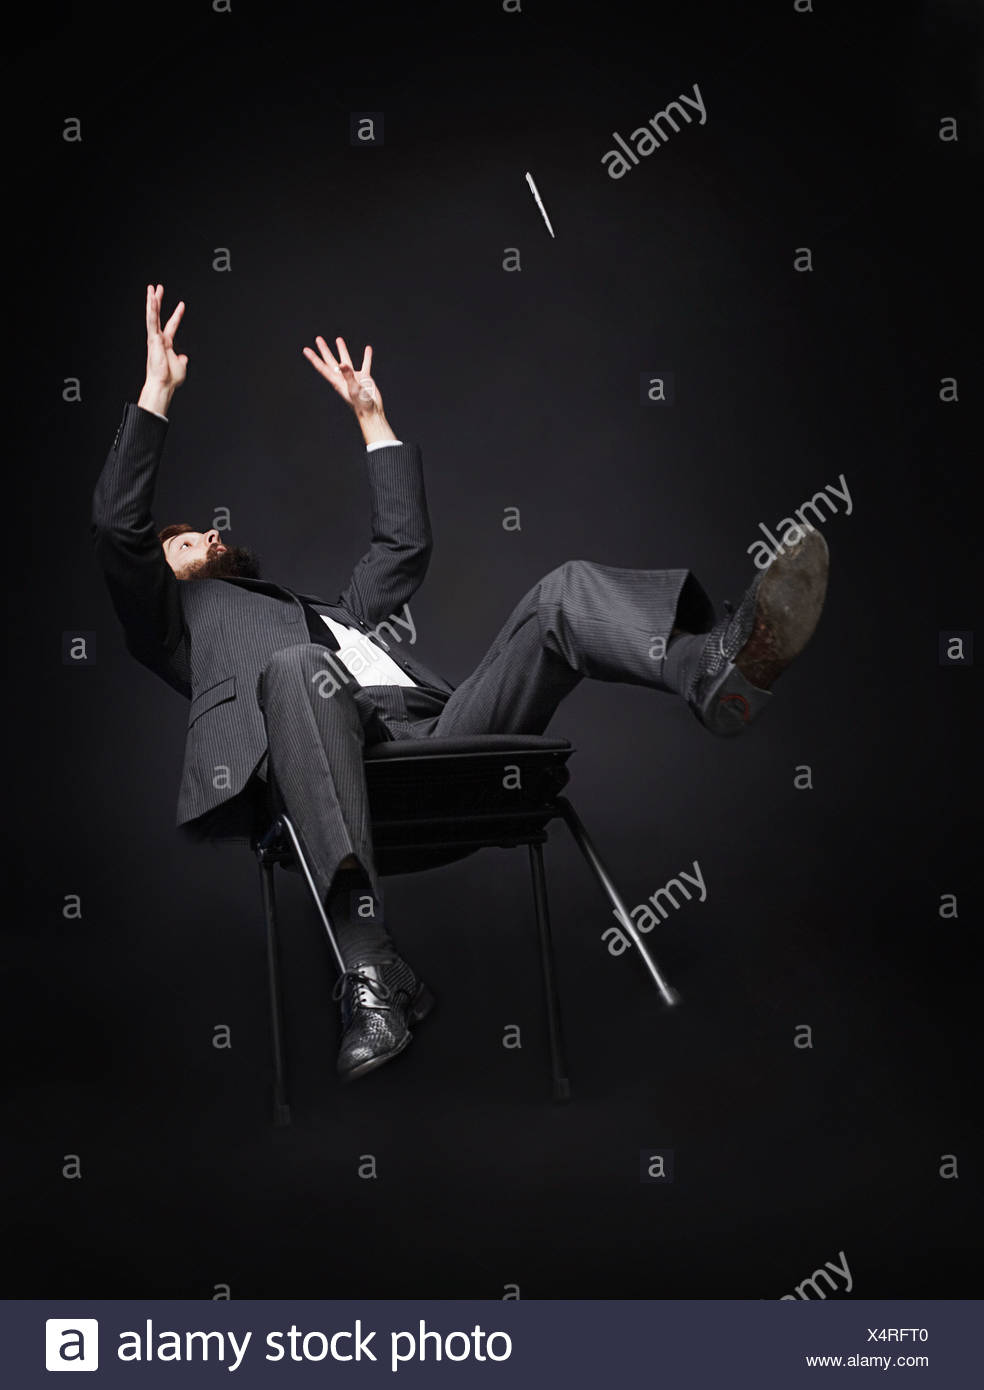 Man falling off a chair - Stock Image